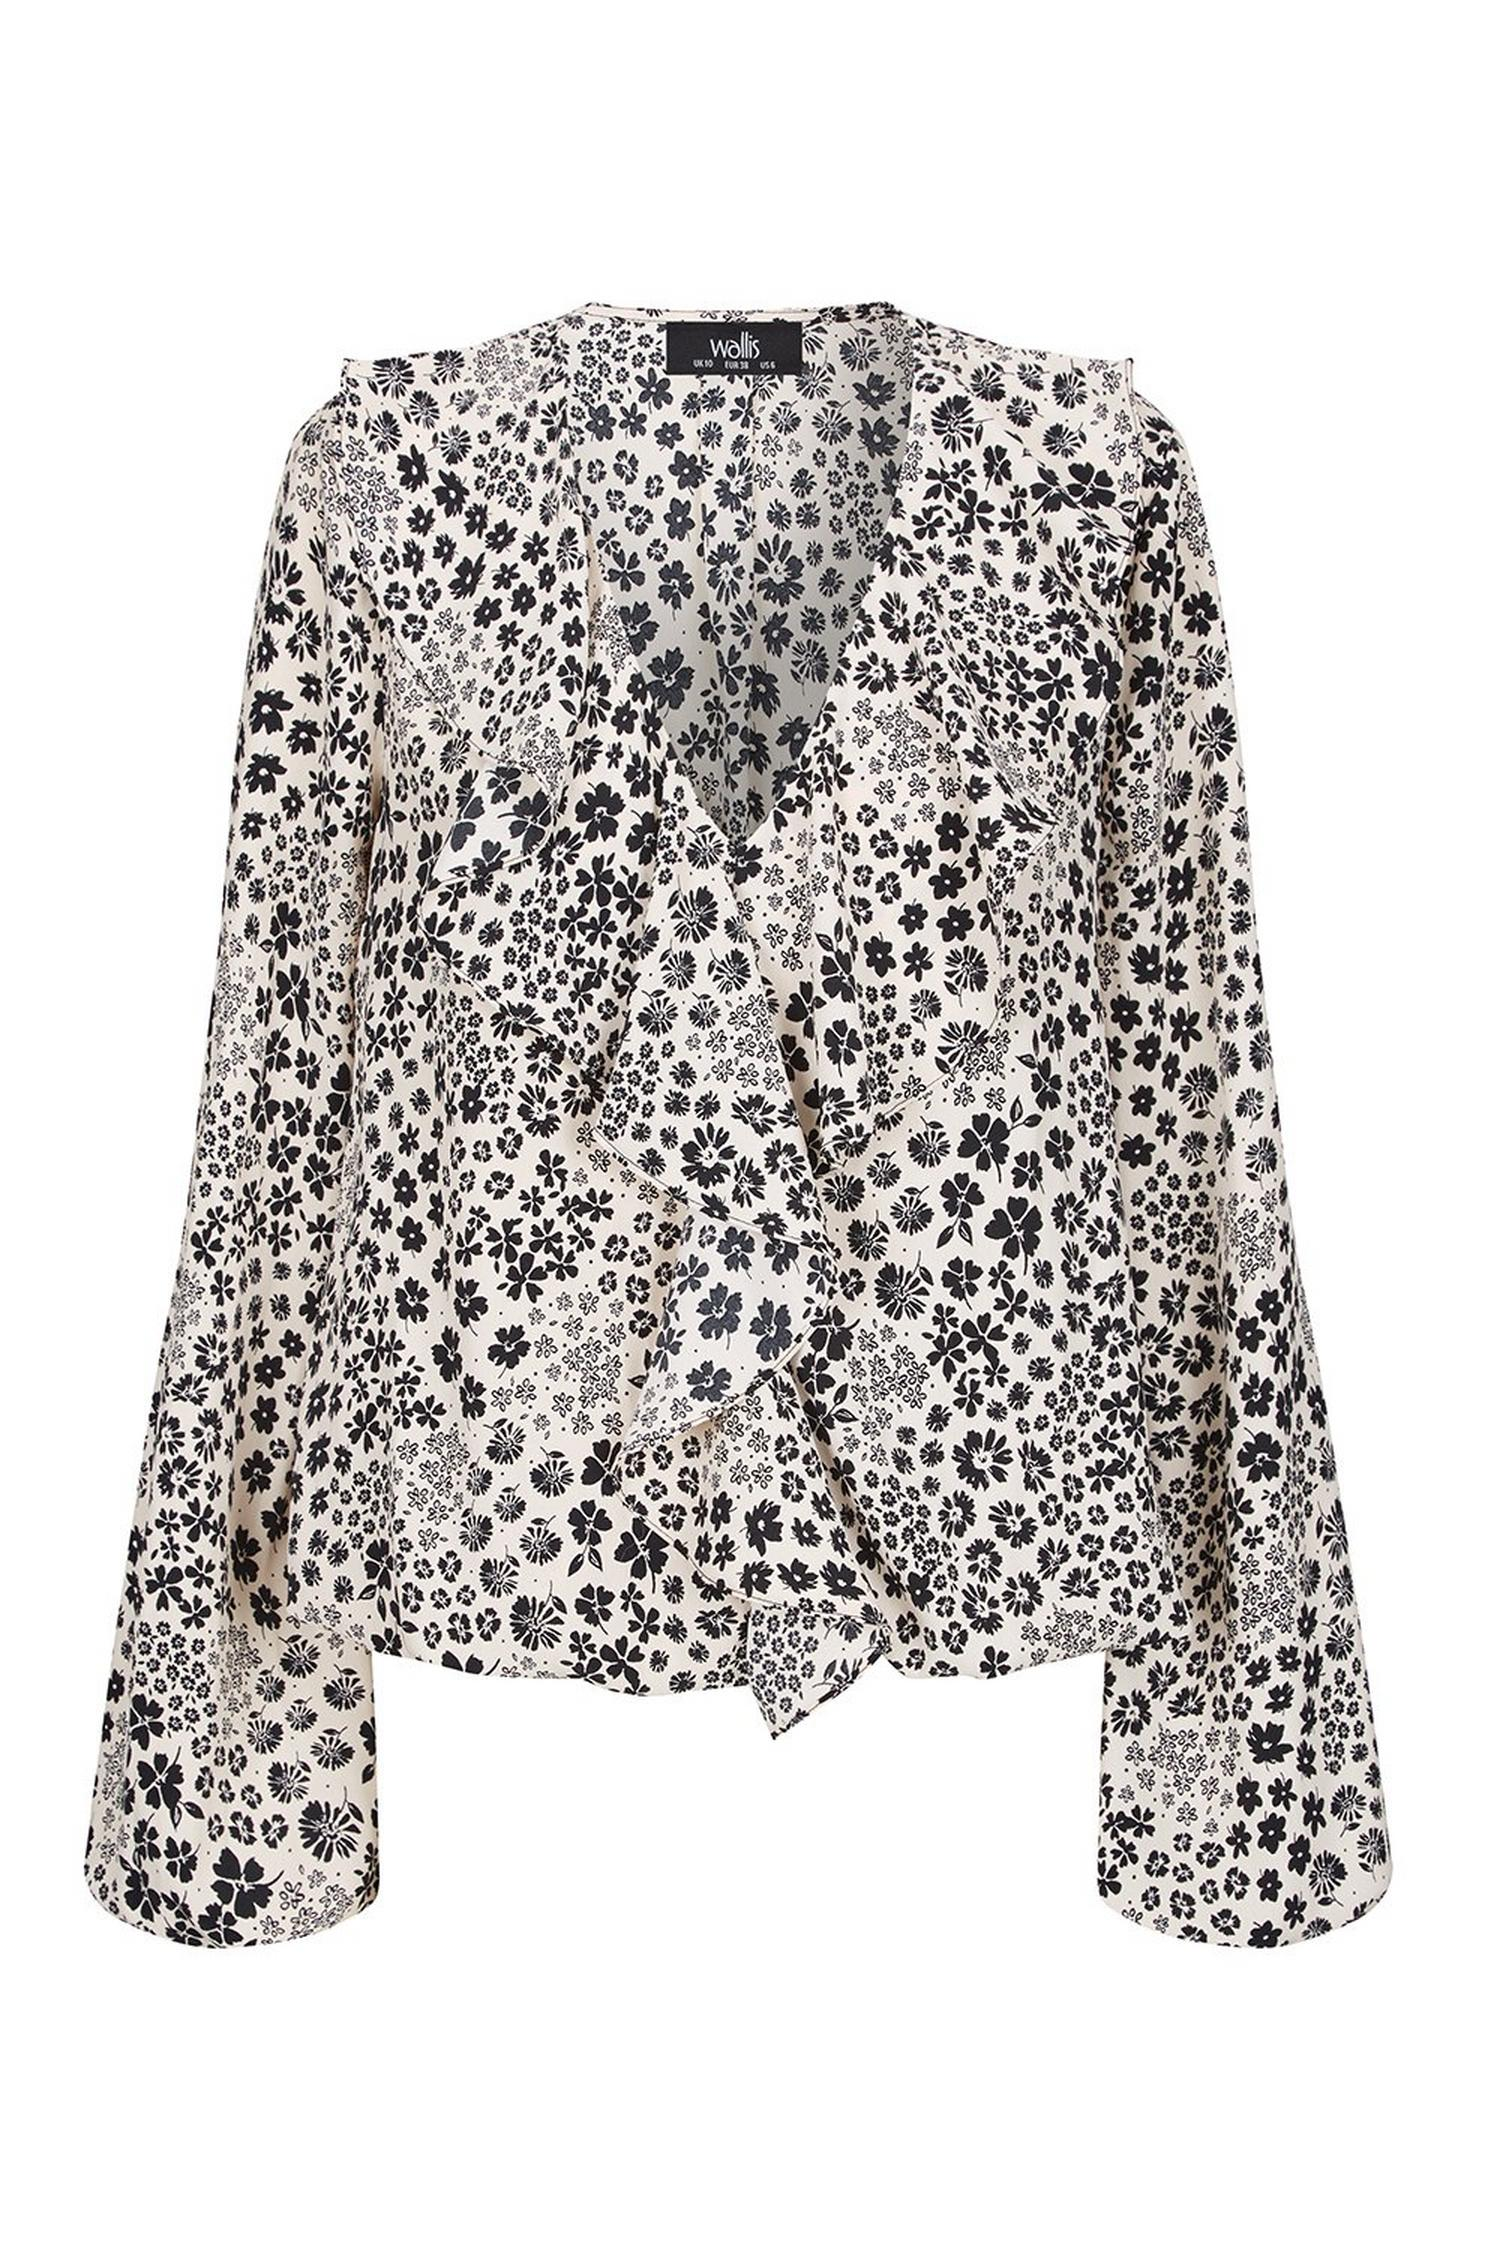 585 Monochrome Floral Print Frill Blouse image number 2